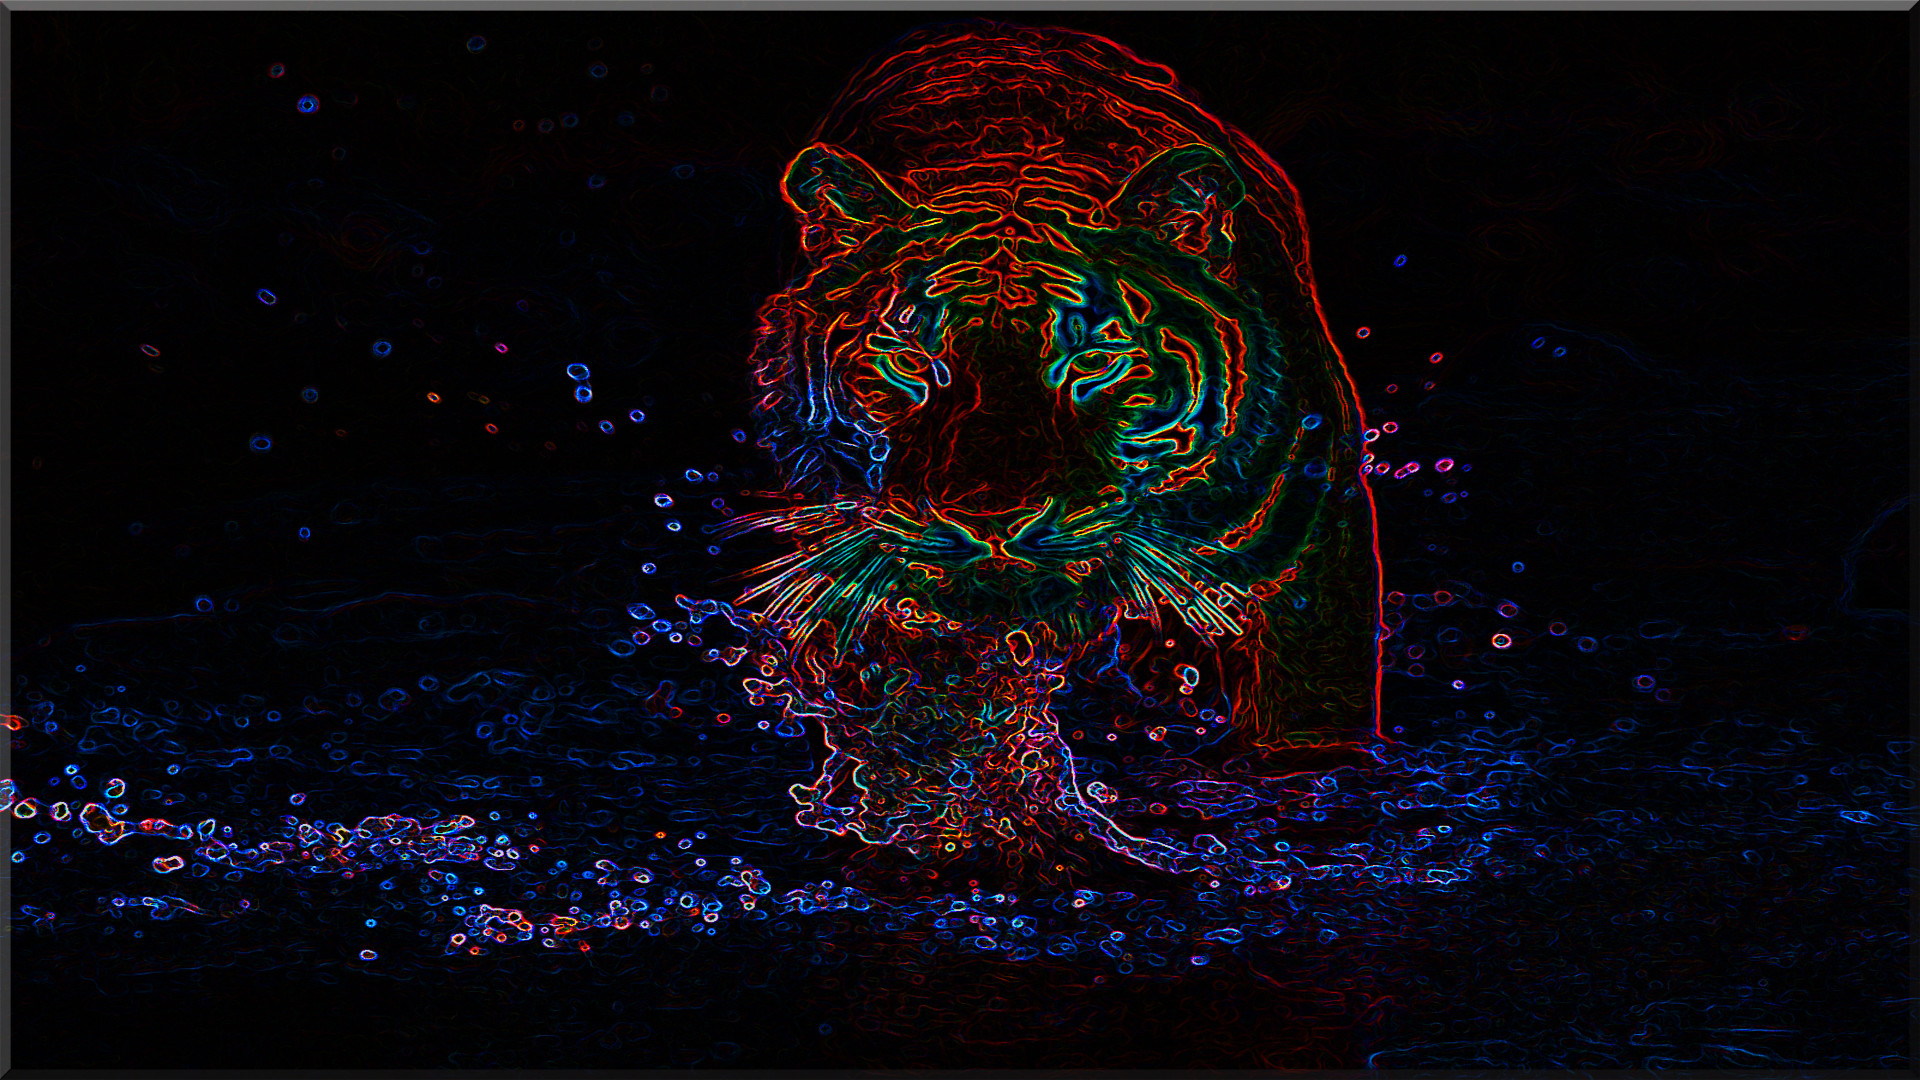 Res: 1920x1080, Neon Tiger - and CG Wallpaper ID 1414390 - Desktop Nexus Abstract